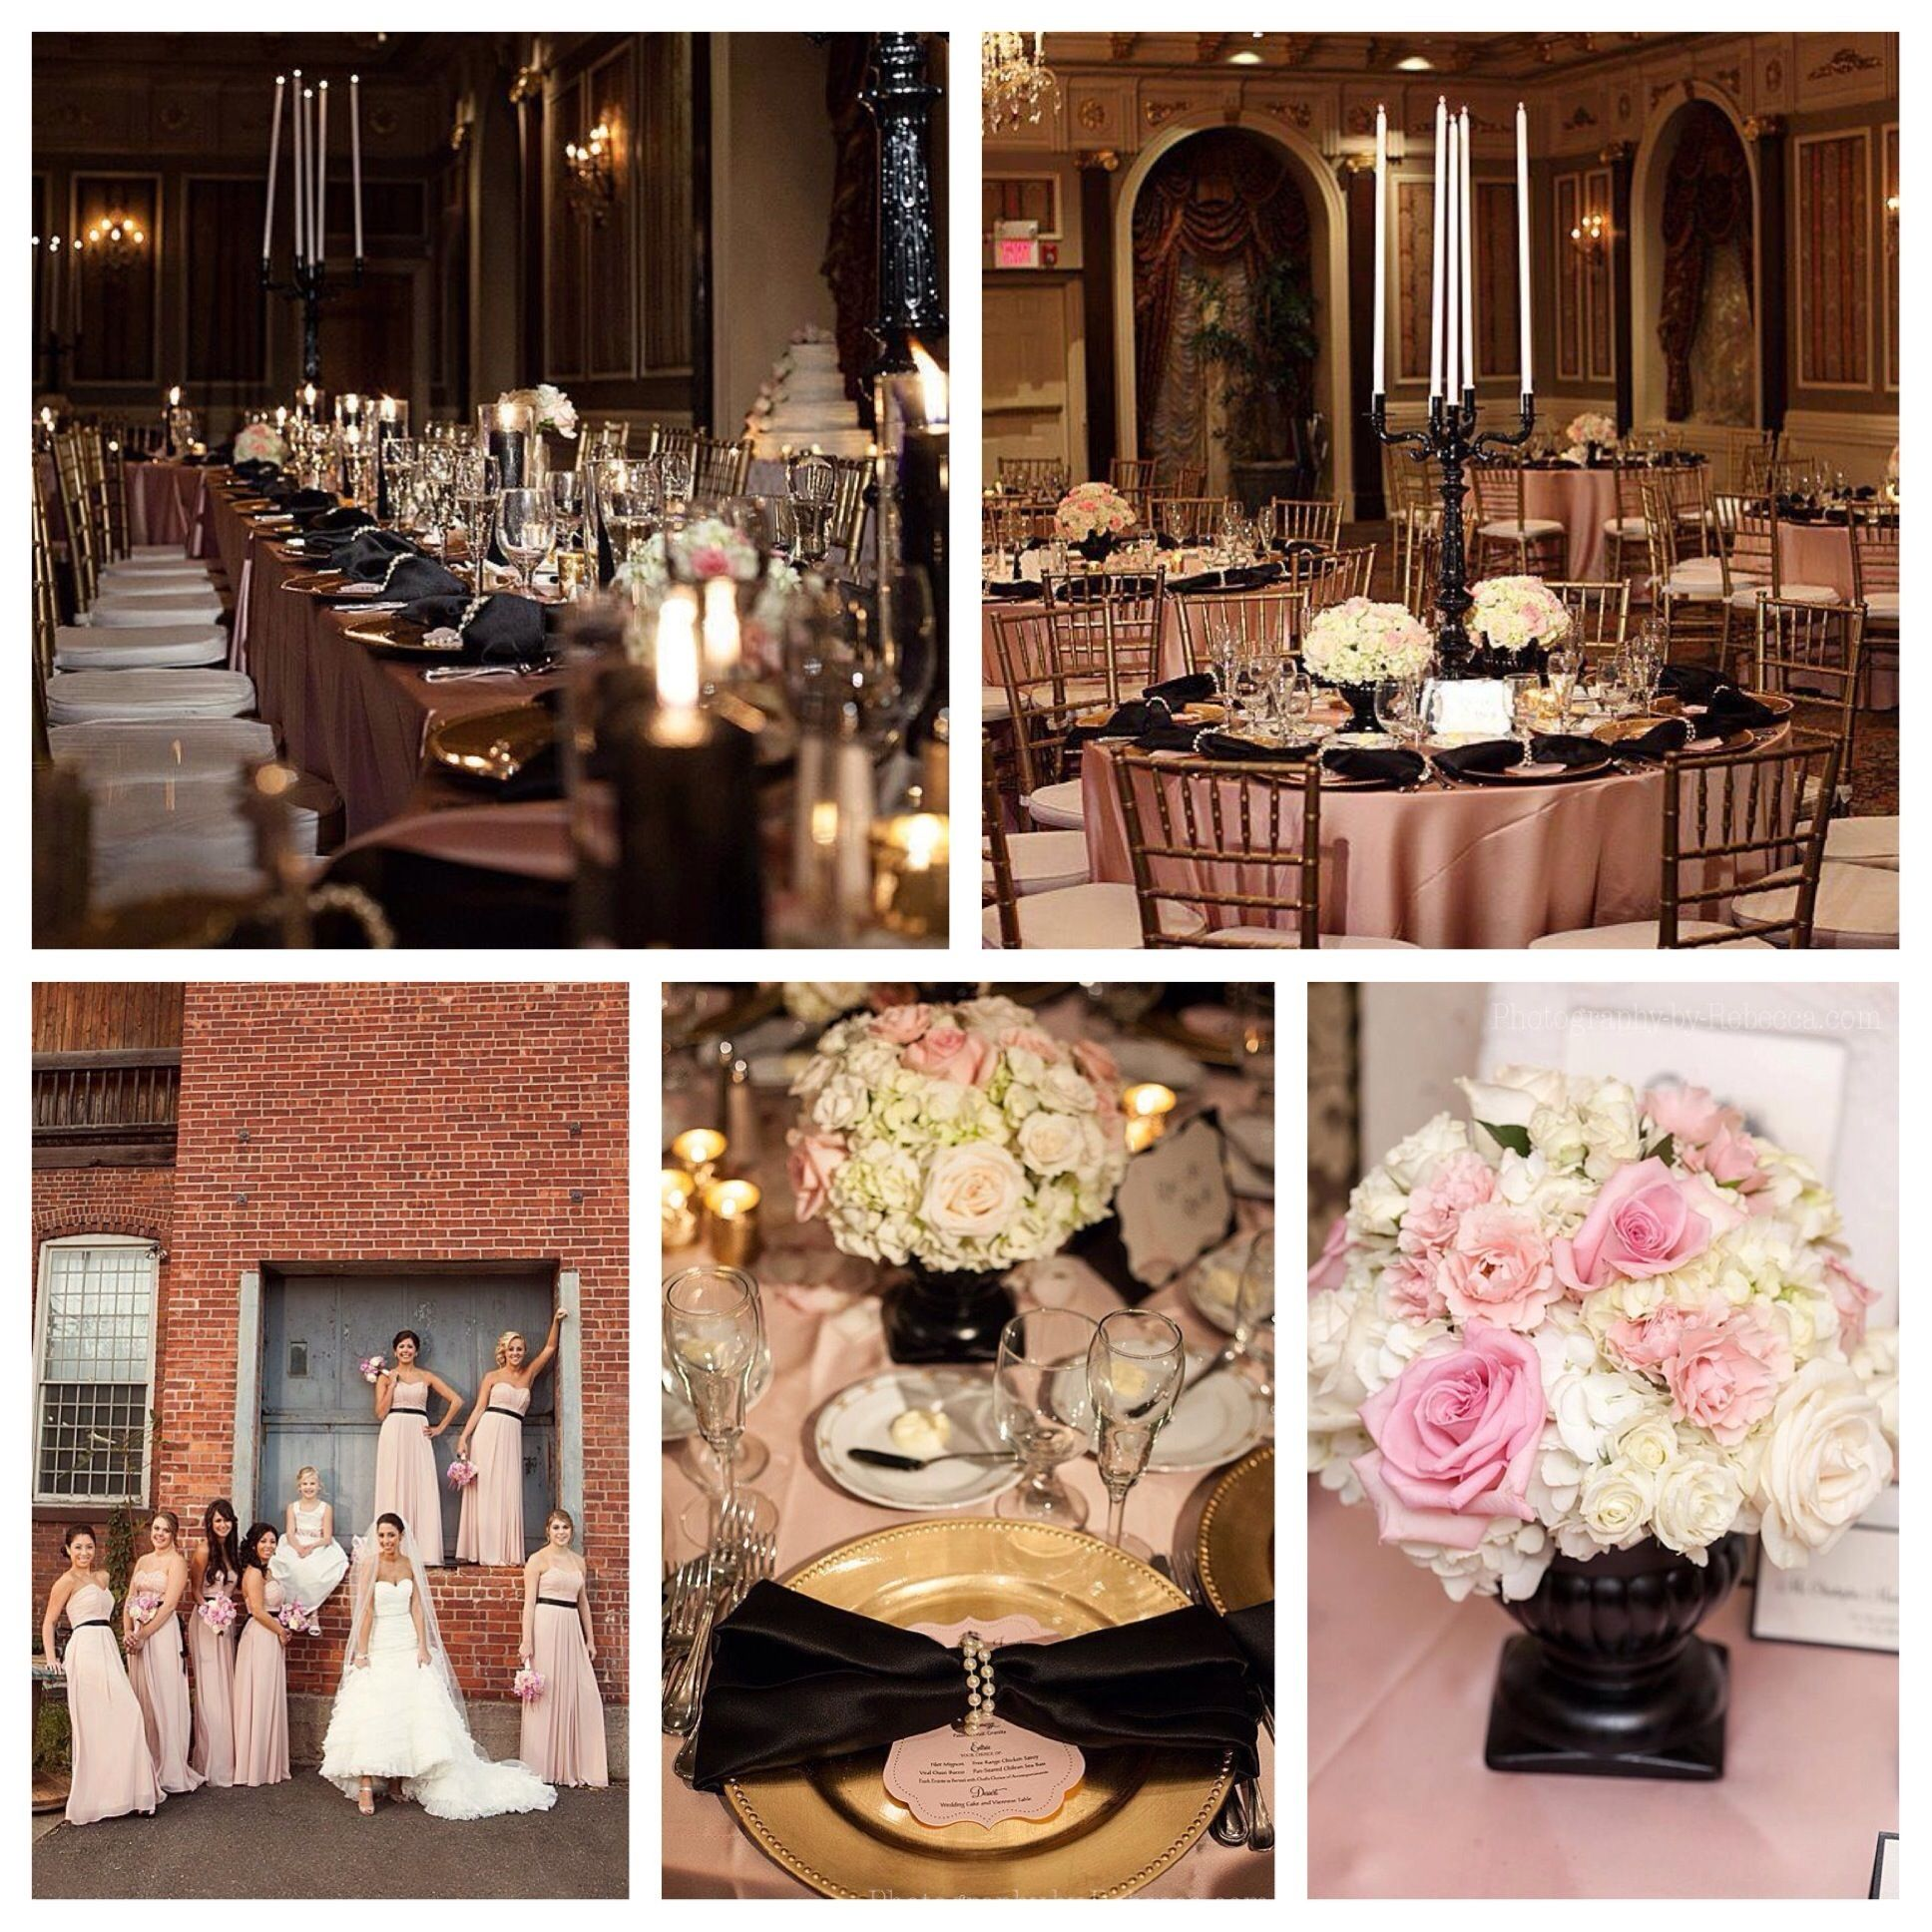 Blush And Gold Wedding Decor: Blush Pink And Black Wedding